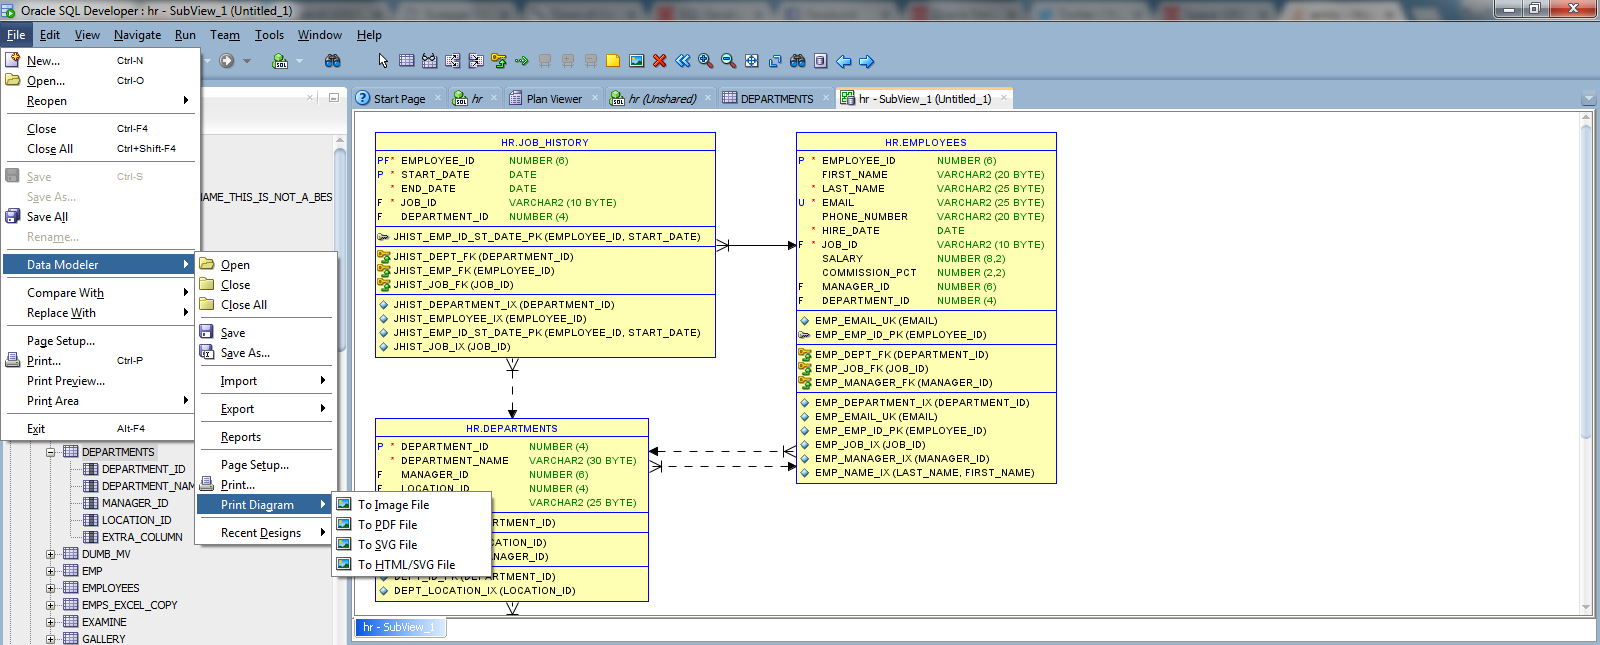 How To Export Erd Diagram To Image In Oracle Data Modeler within Sql Developer 4 Er Diagram